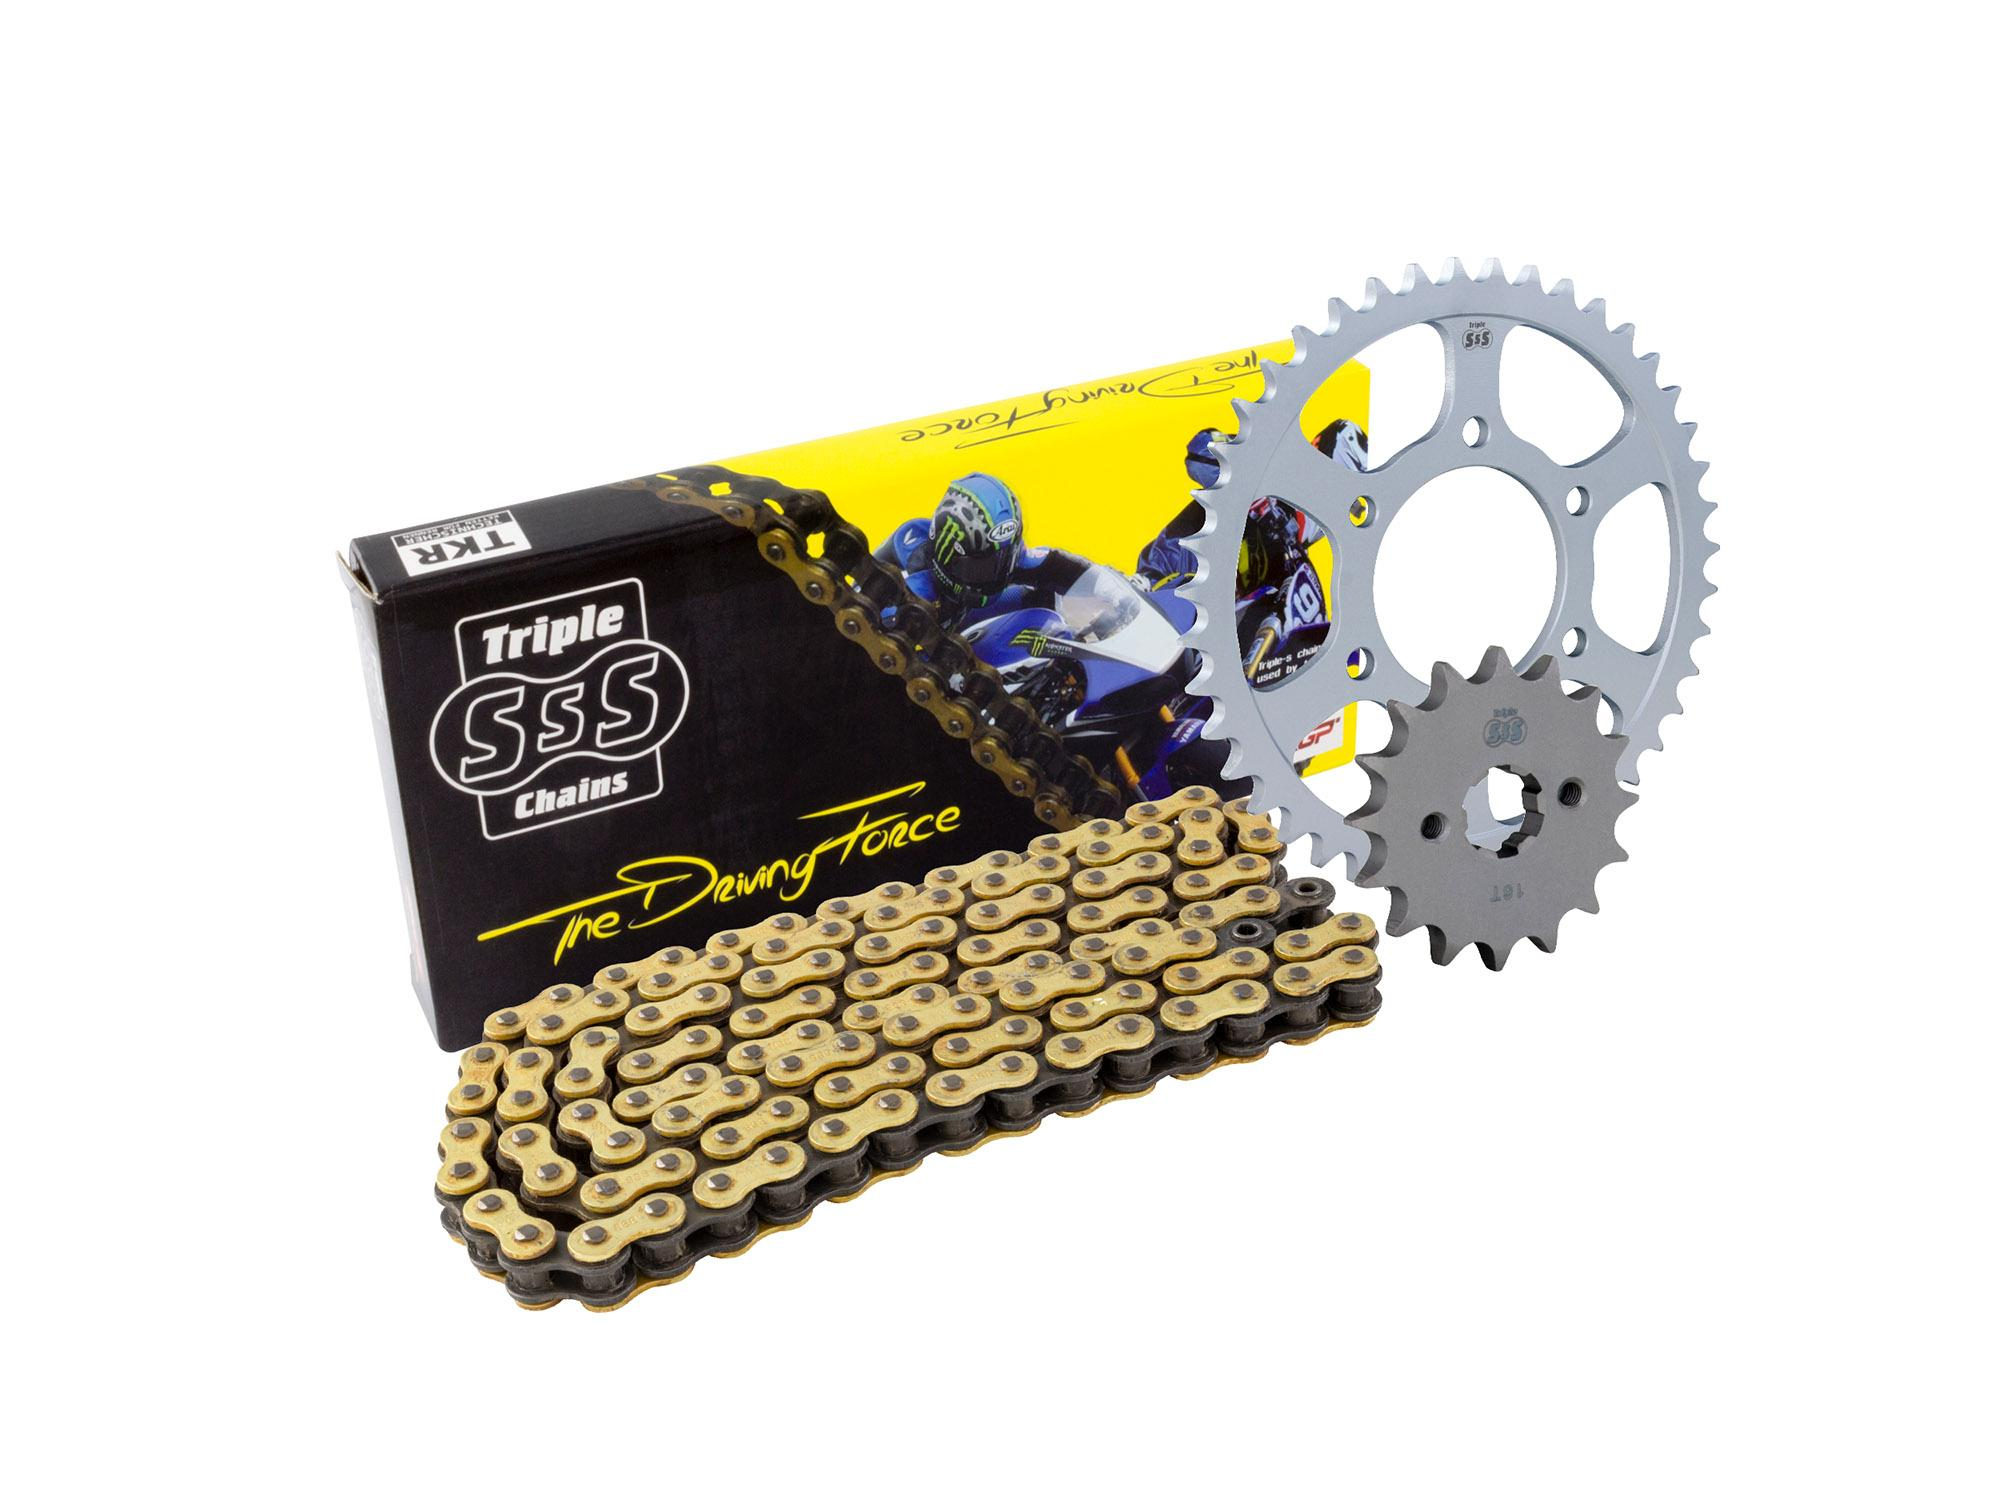 Kawasaki ZX-10R 16> Chain & Sprocket Kit: 17T Front, 39T Rear, HD O-Ring Gold Chain 525H 114 Link